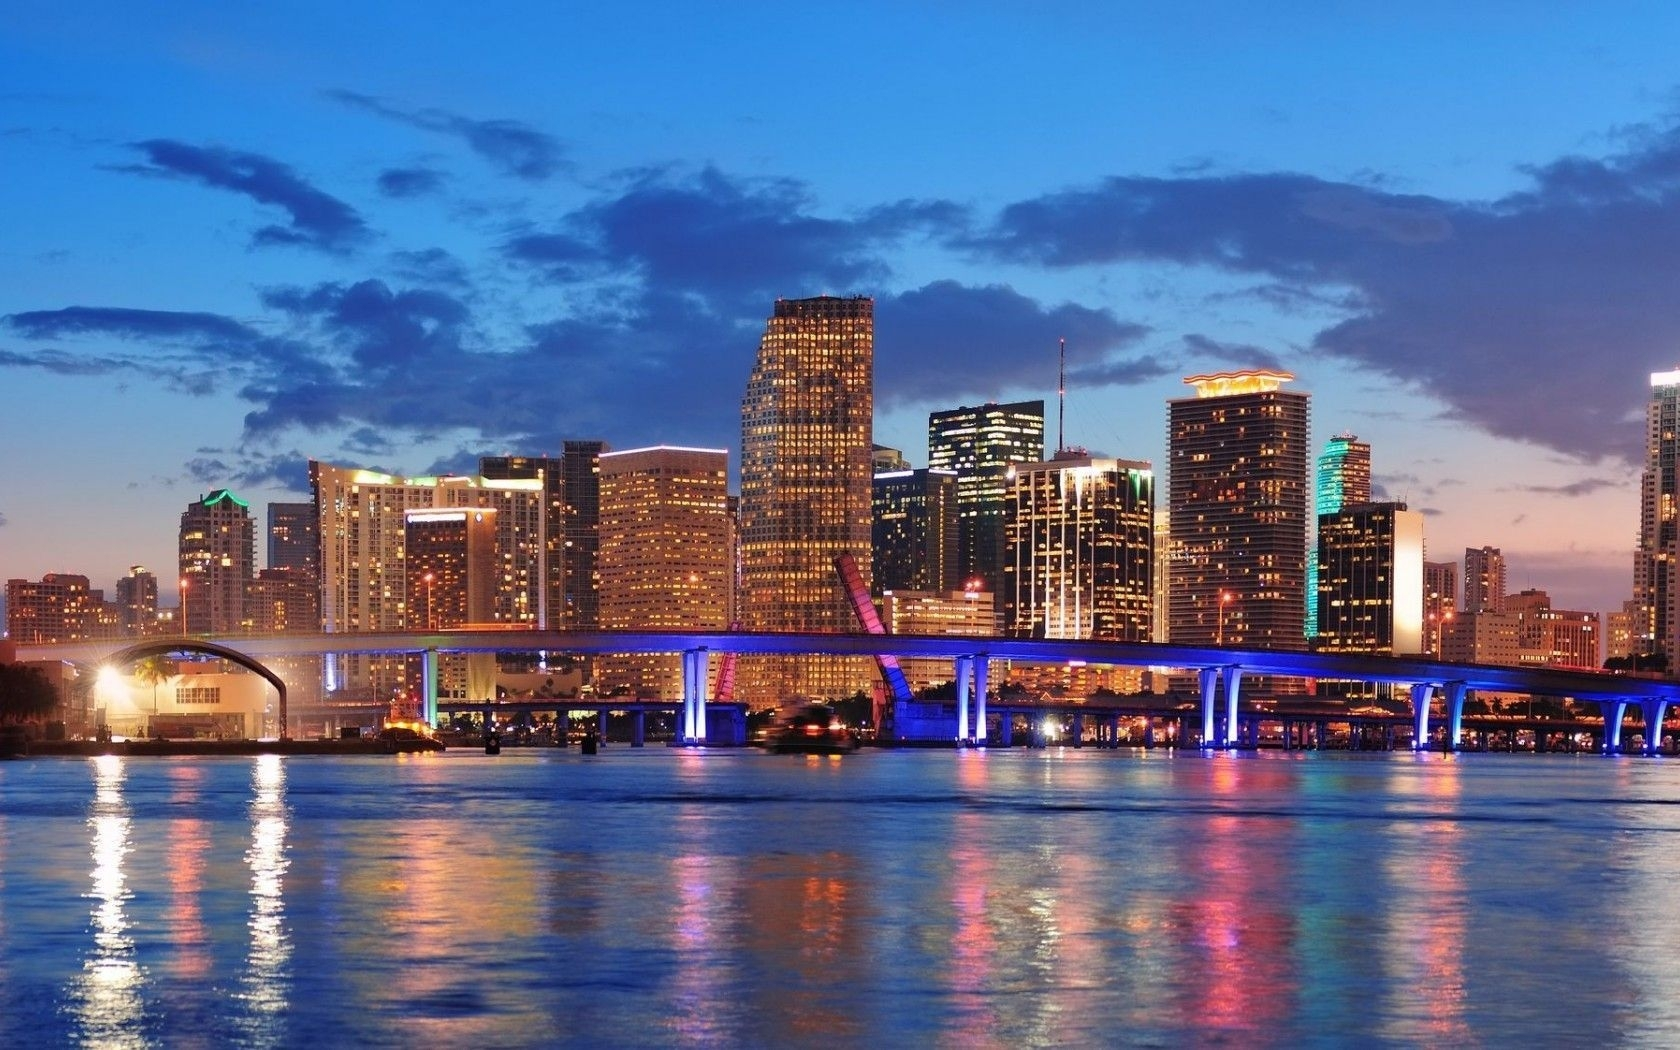 miami florida city wallpaper | hd desktop background